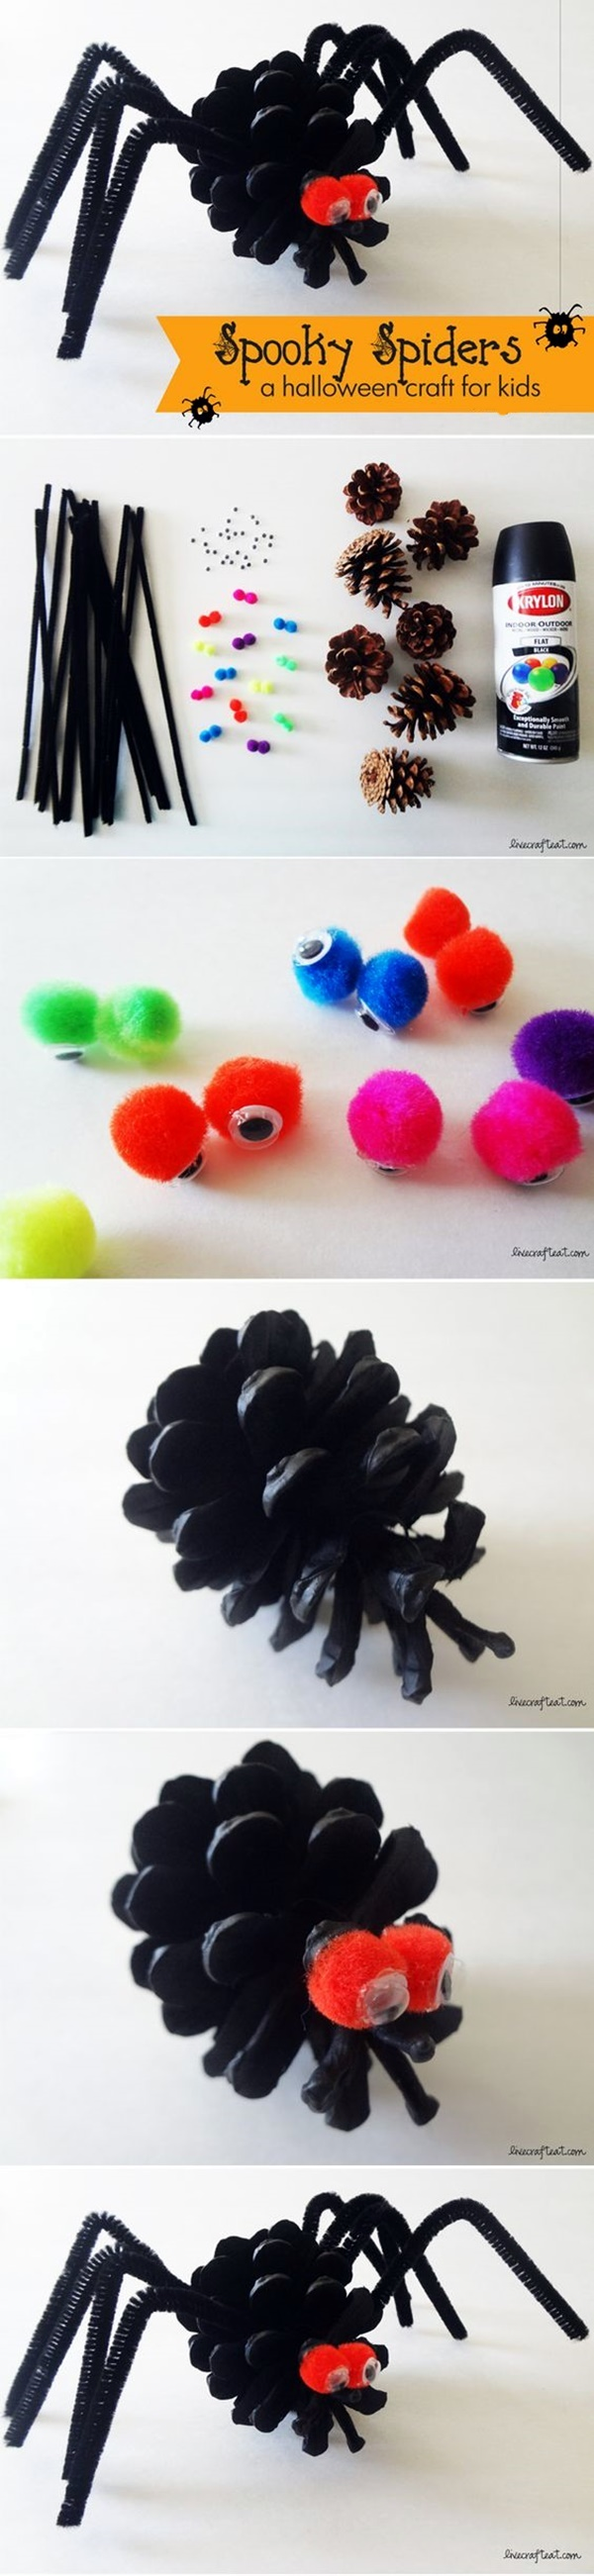 diy-halloween-craft-ideas-for-kids-9